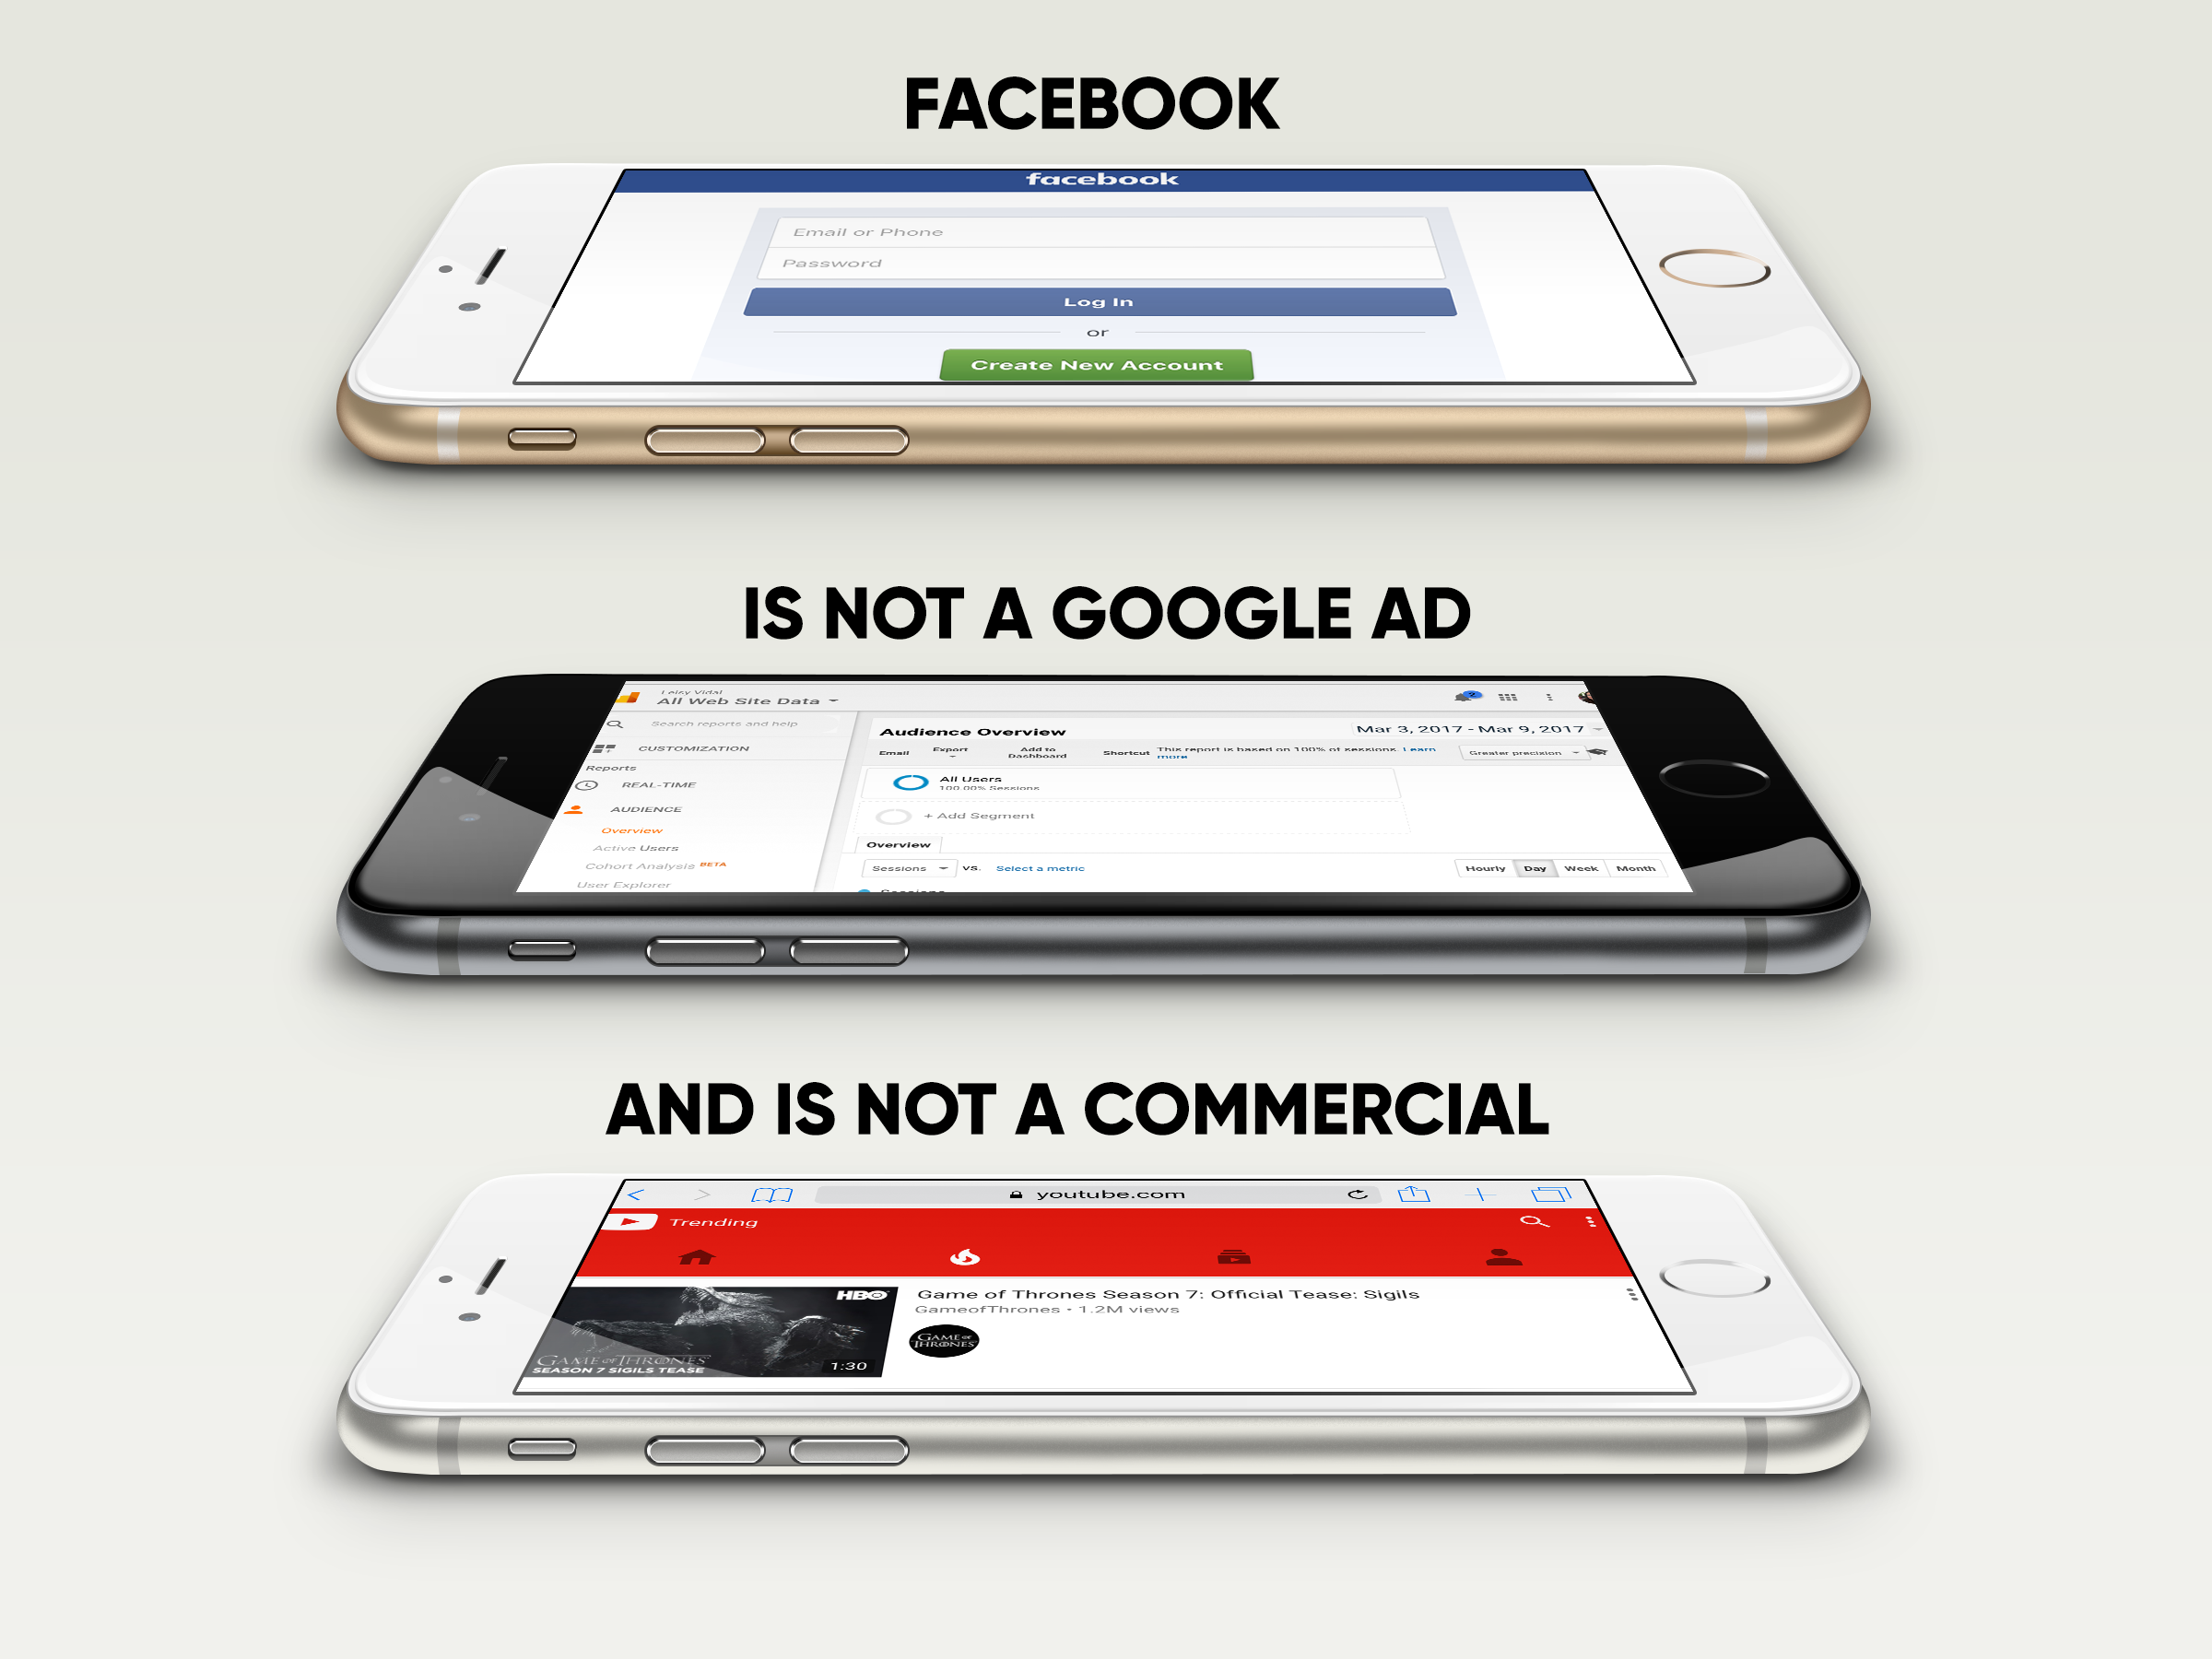 Facebook Is Not a Google Ad or Commercial